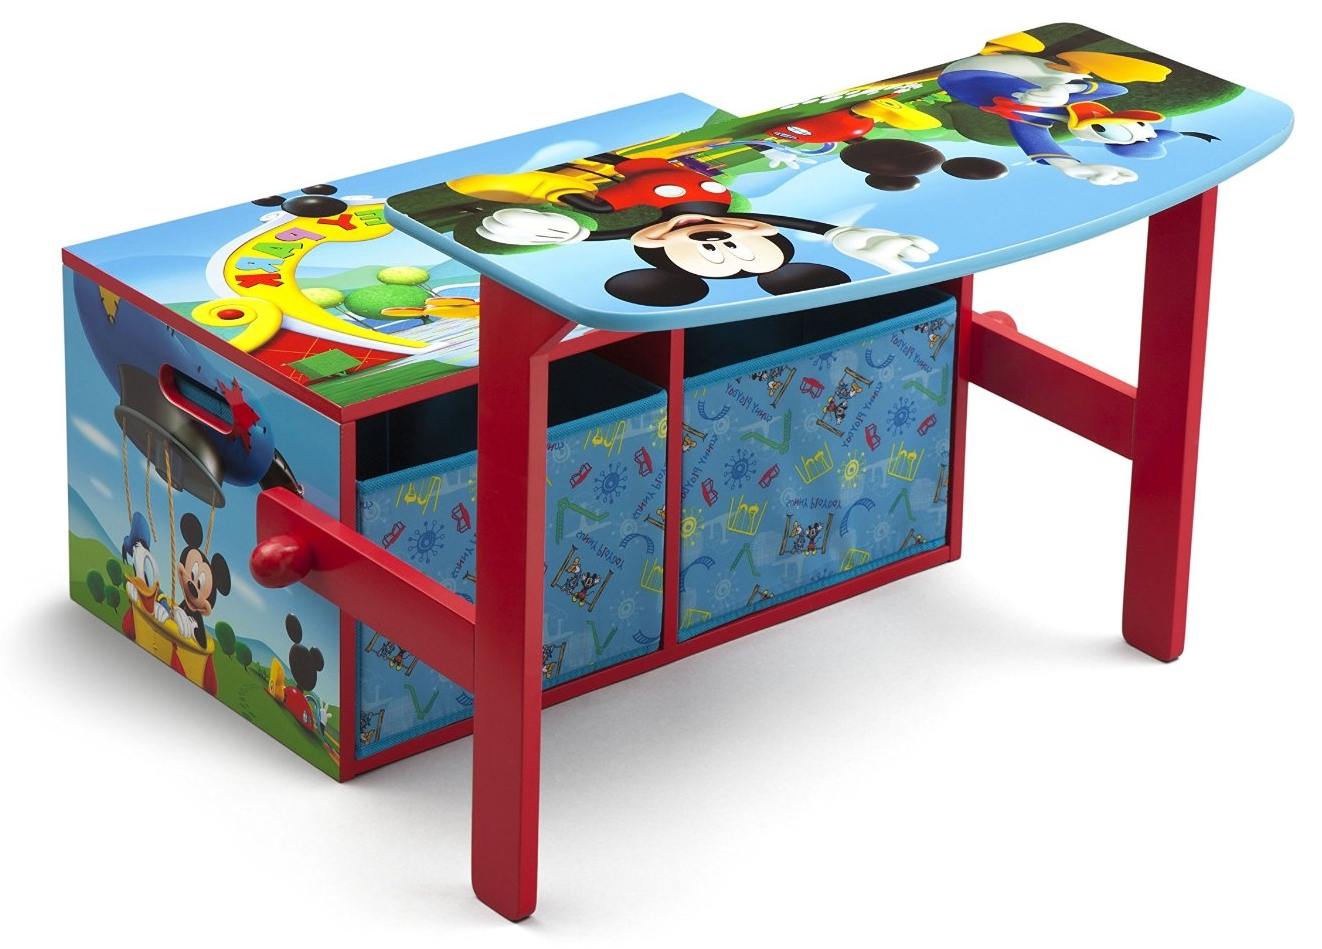 kinderbank disney bank mickey mouse 3 in 1 aufbewahrung sitzbank spielzeugkiste 80213029579 ebay. Black Bedroom Furniture Sets. Home Design Ideas